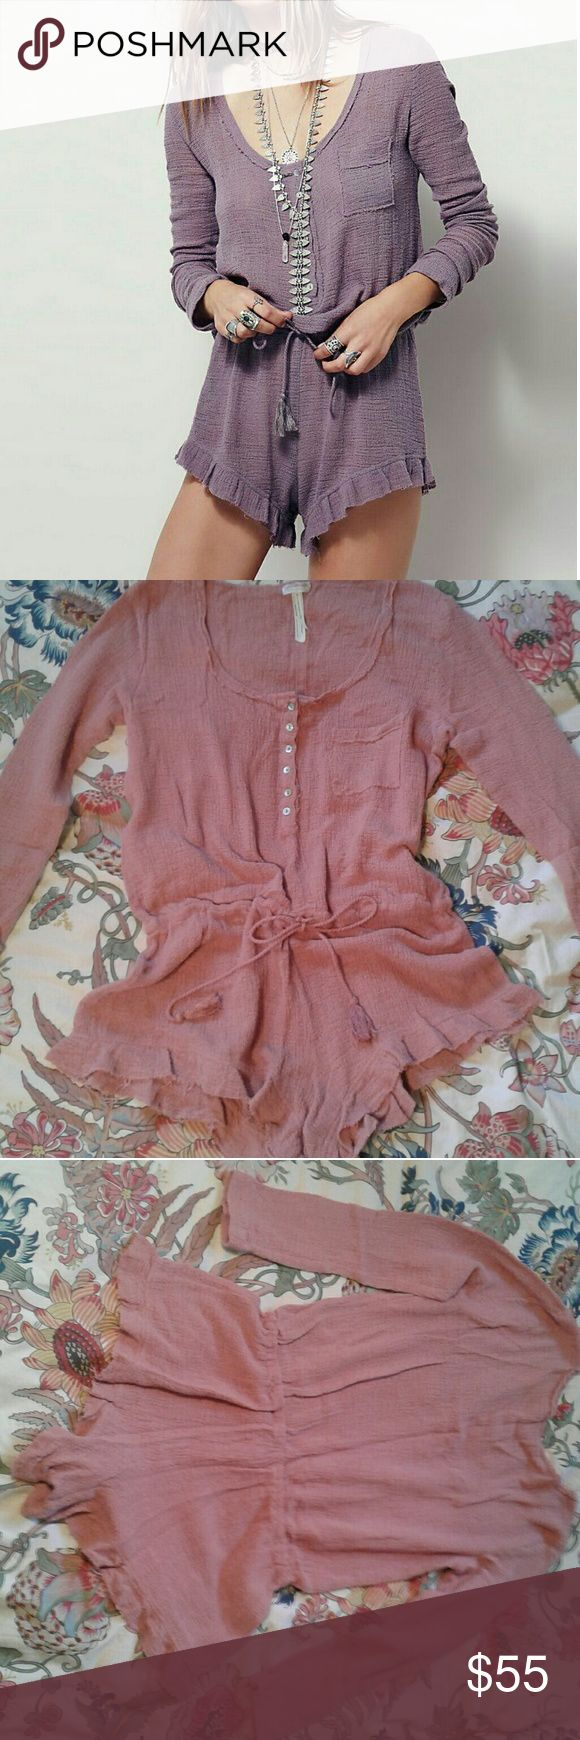 Flash Sale! Free People Endless Summer Rose Romper Free People Intimately Endless Summer Rose color romper. Stock pics are of the lavender version. Mine is the vintage rose color.  Raw edges and shell buttons, with adorable tassel rope waist ties and ruffle legs are just darling! Made of a wonderful airy gauze, reminiscent of cheese cloth almost. Divine for warm summer nights,  or days on the beach! Reluctantly parting with because I really need a small. Great condition,  intentionally…